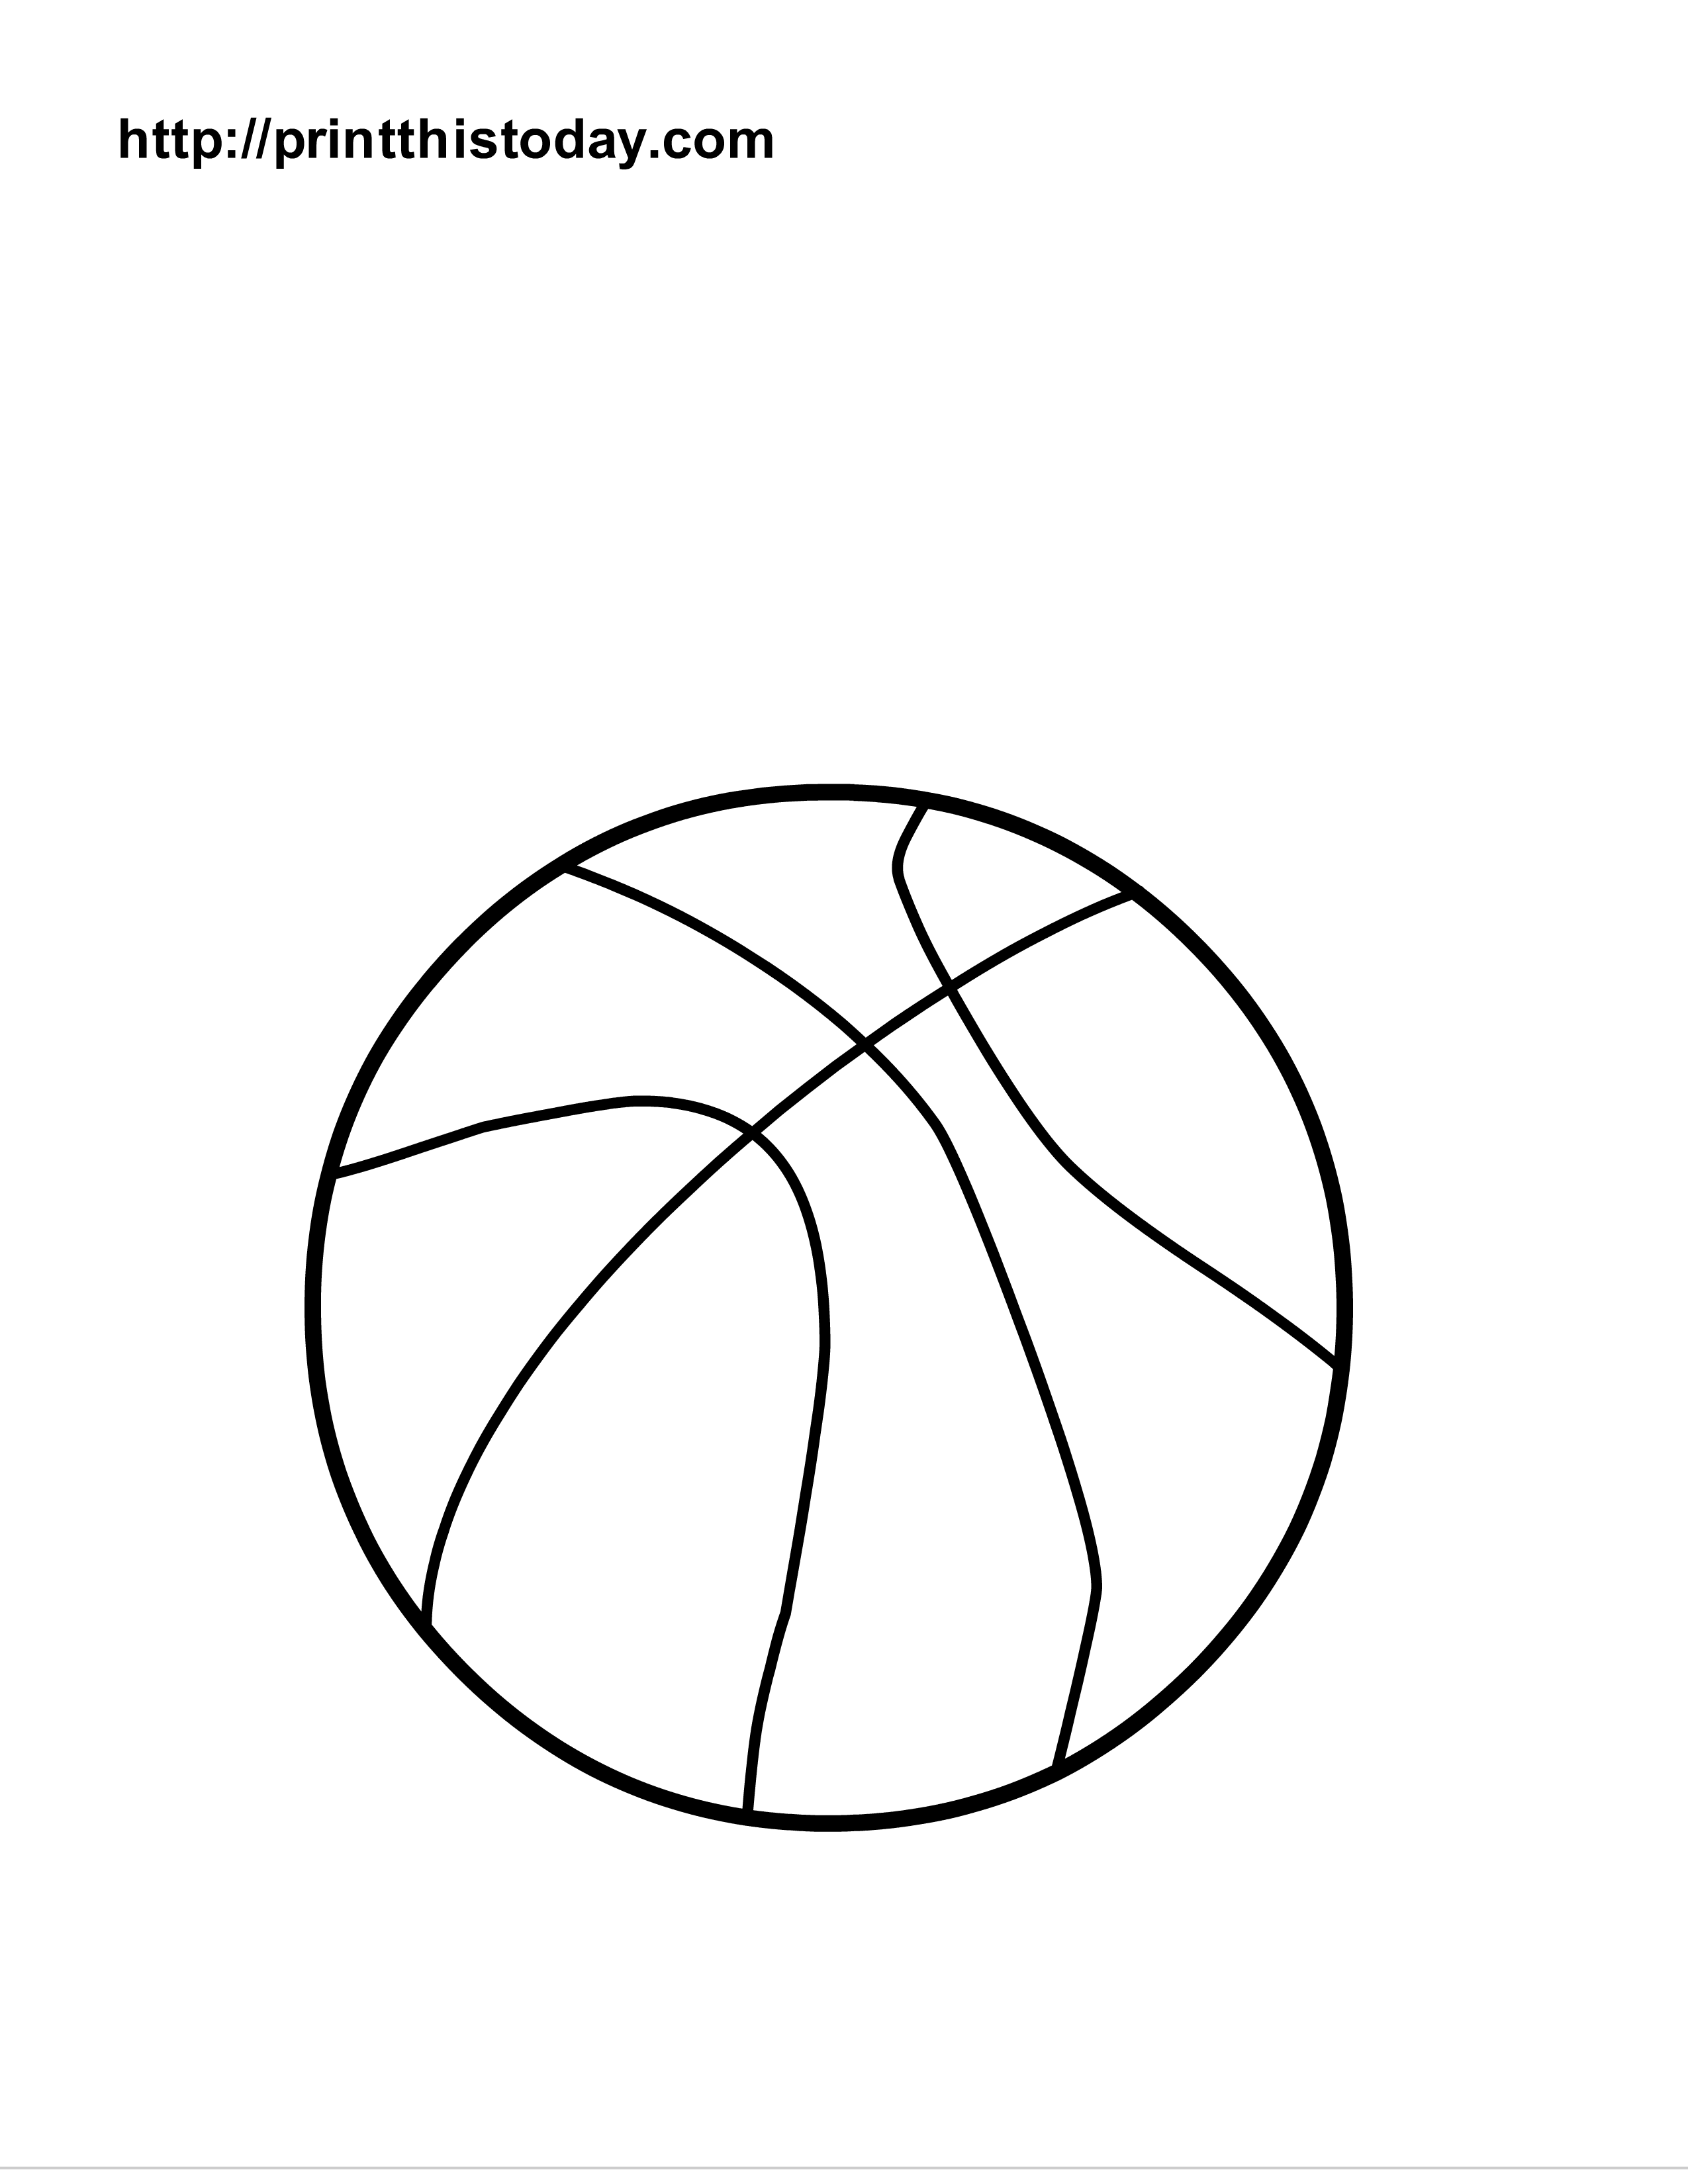 colouring sheet of ball free printable sports balls coloring pages ball colouring of sheet 1 1